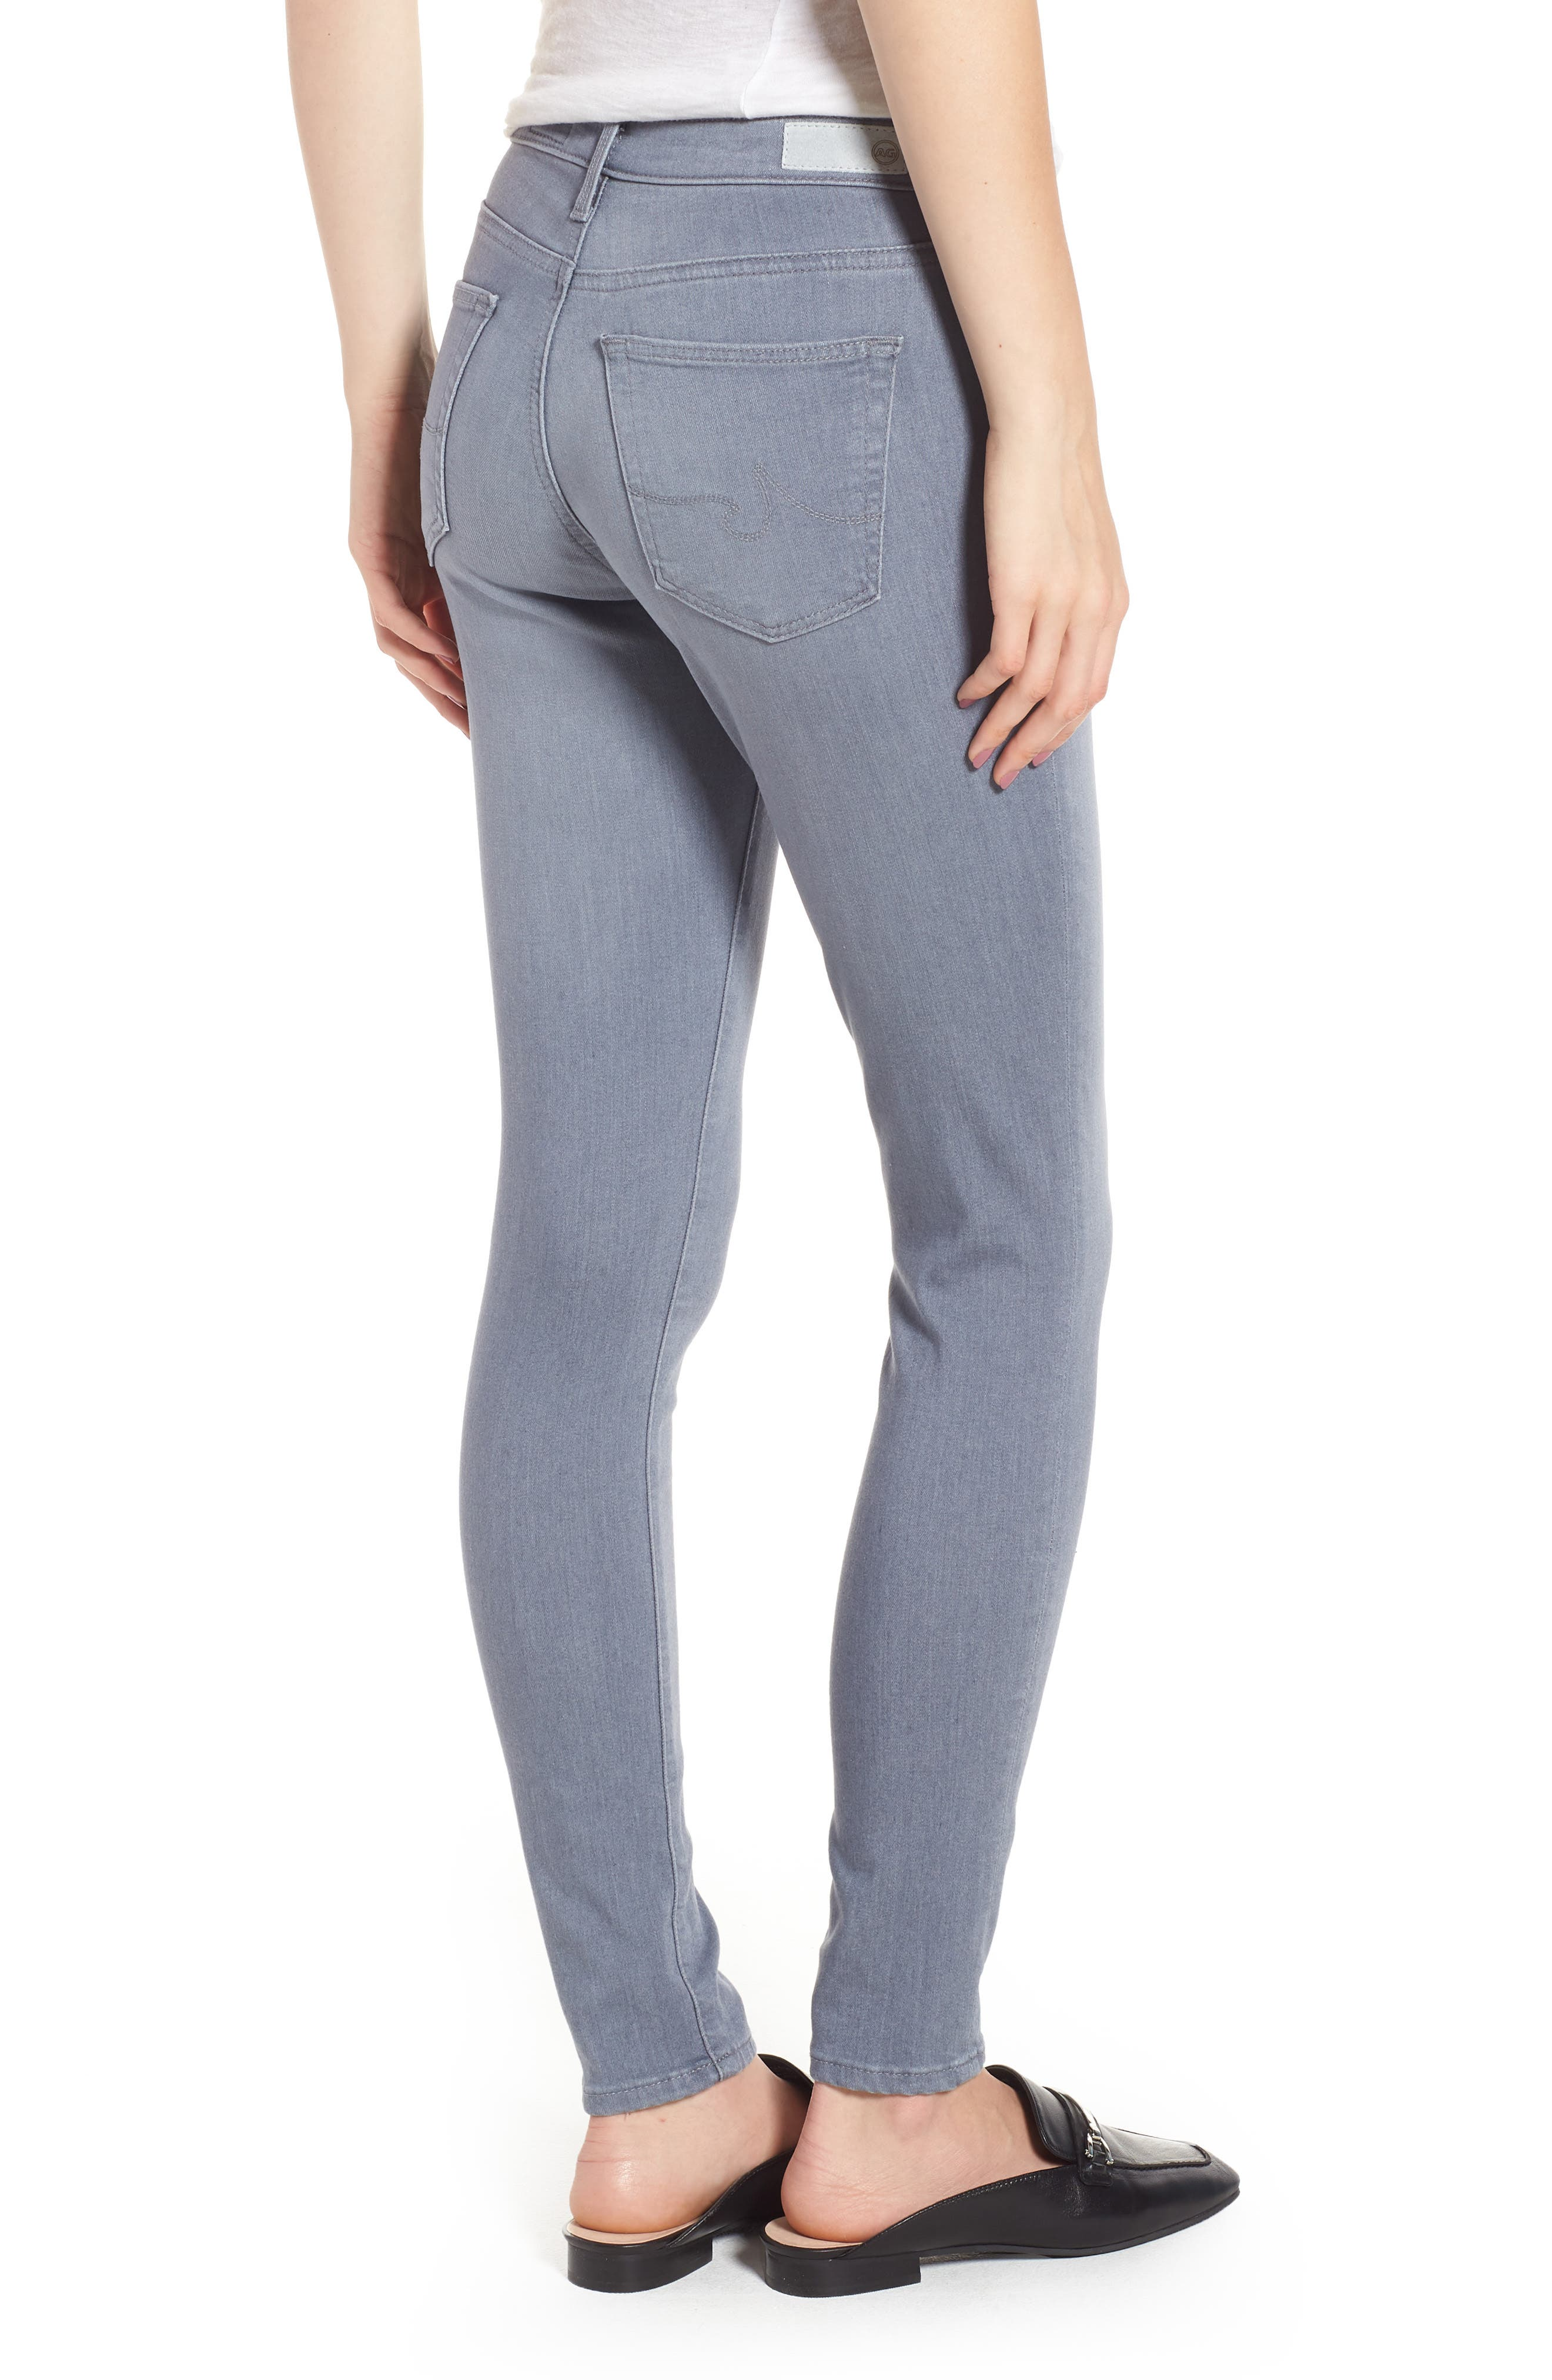 Ankle 'The Legging' Super Skinny Jeans,                             Alternate thumbnail 2, color,                             Valley Smoke